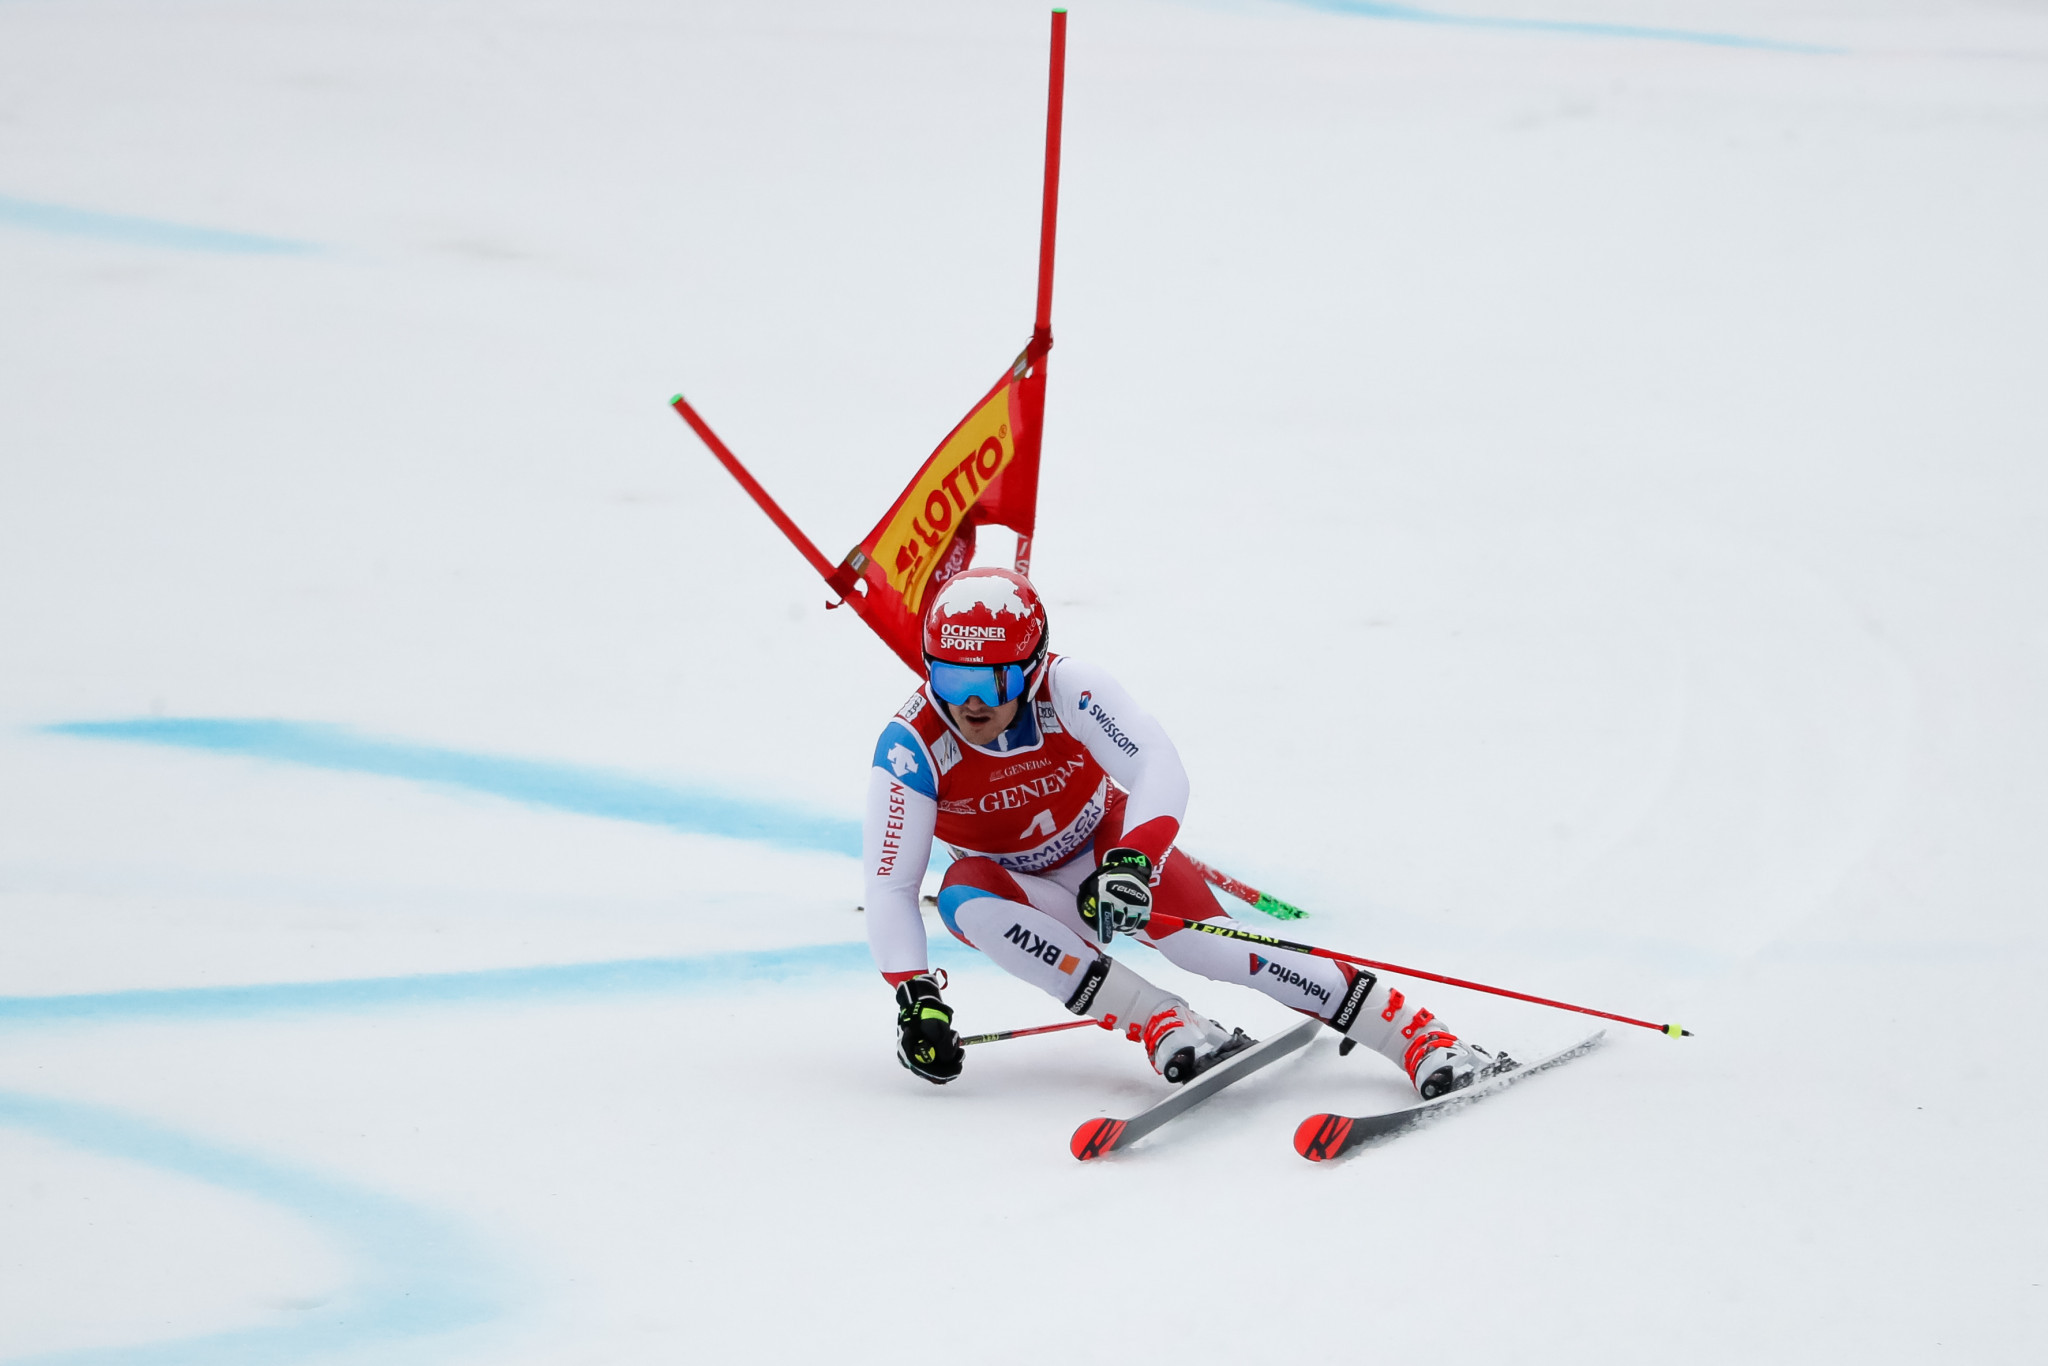 Loïc Meillard made the World Cup podium for the second time this year ©Getty Images